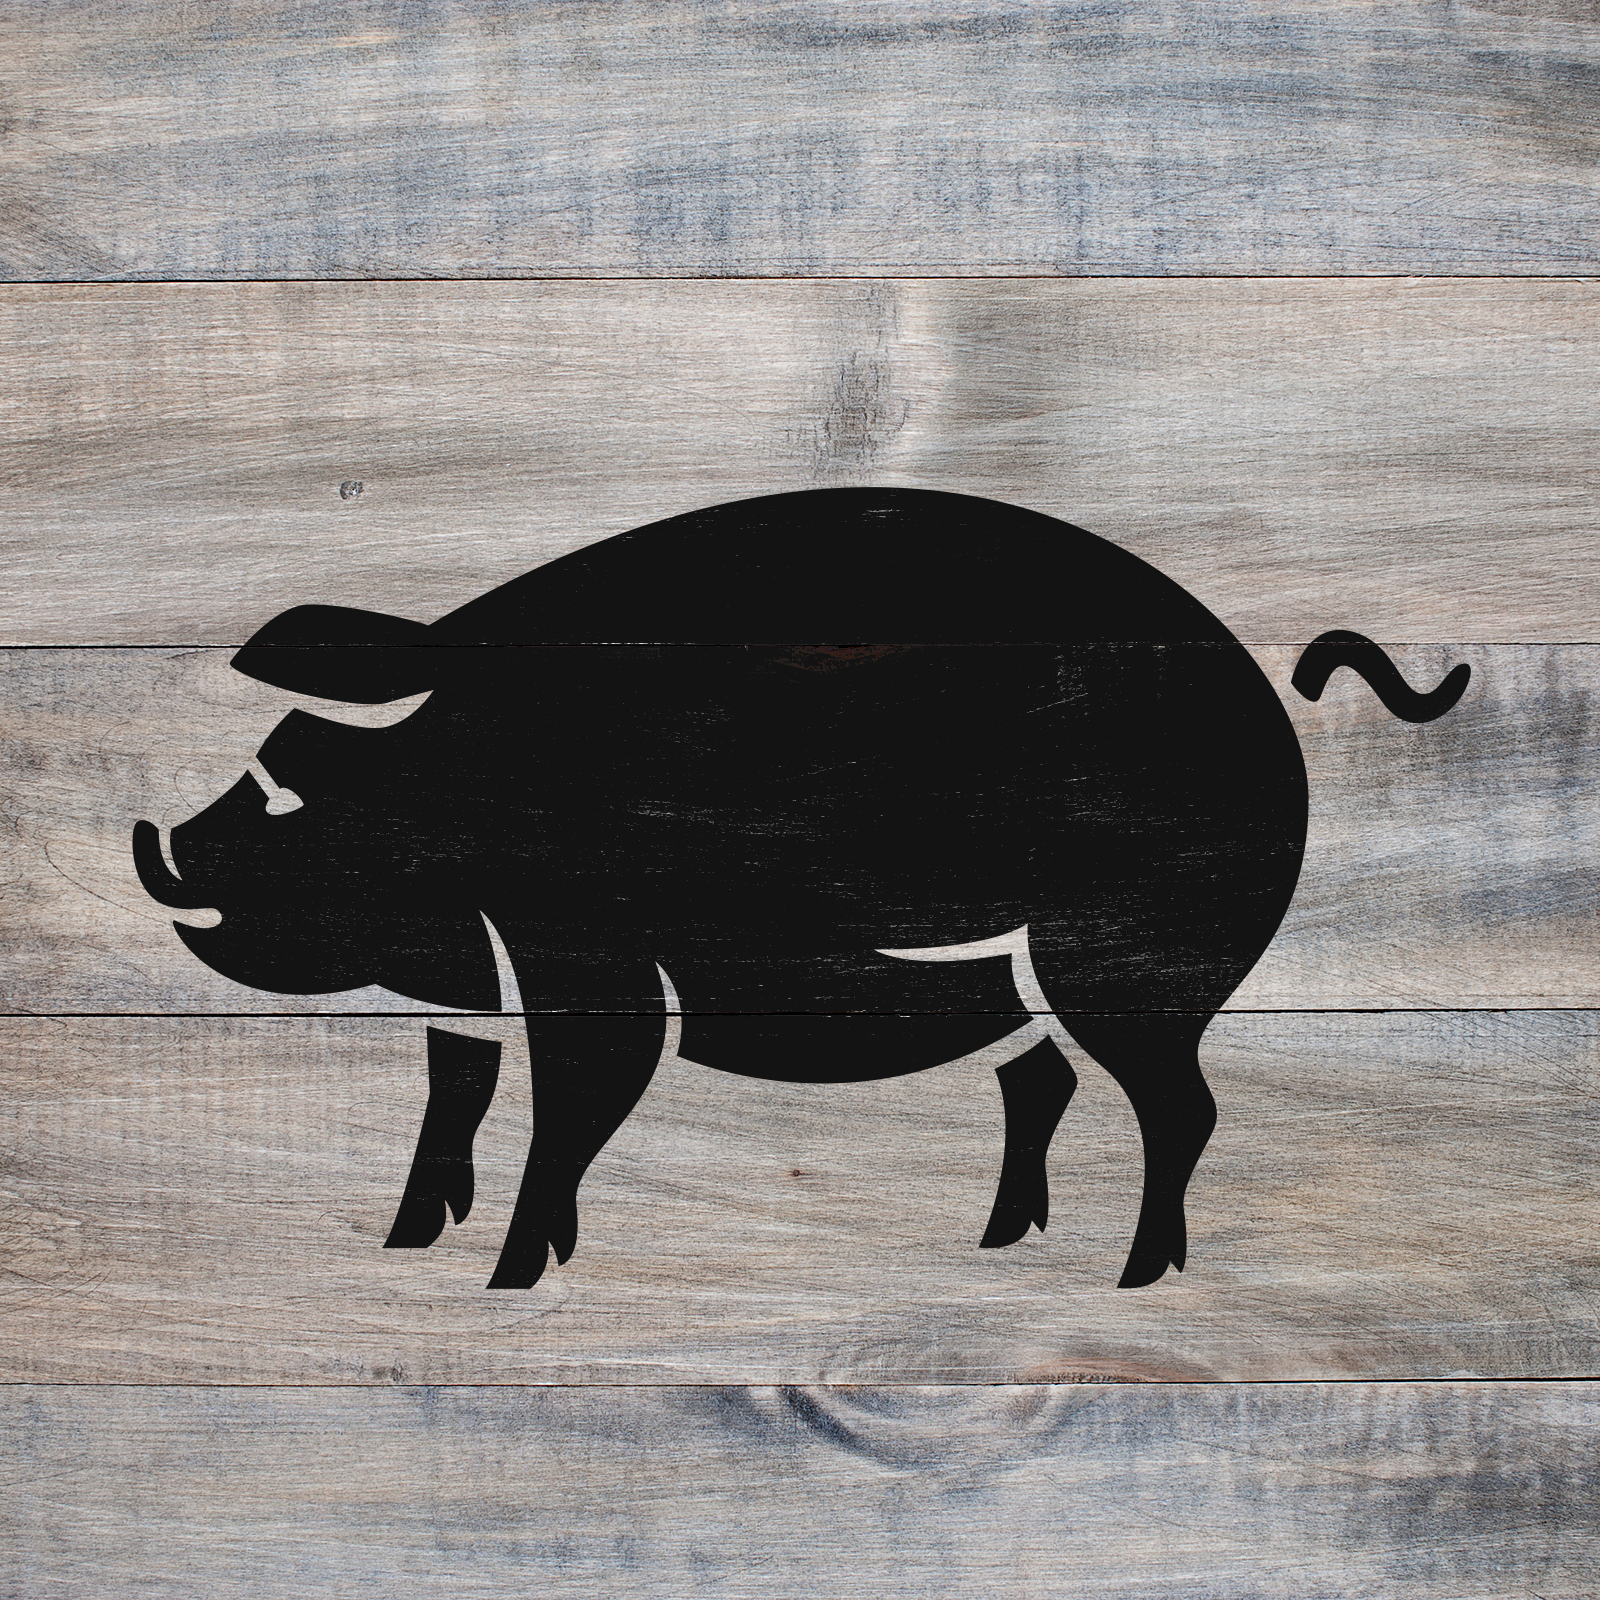 Pig Stencil - Reusable Stencils of a Pig Available in Small & Large Sizes